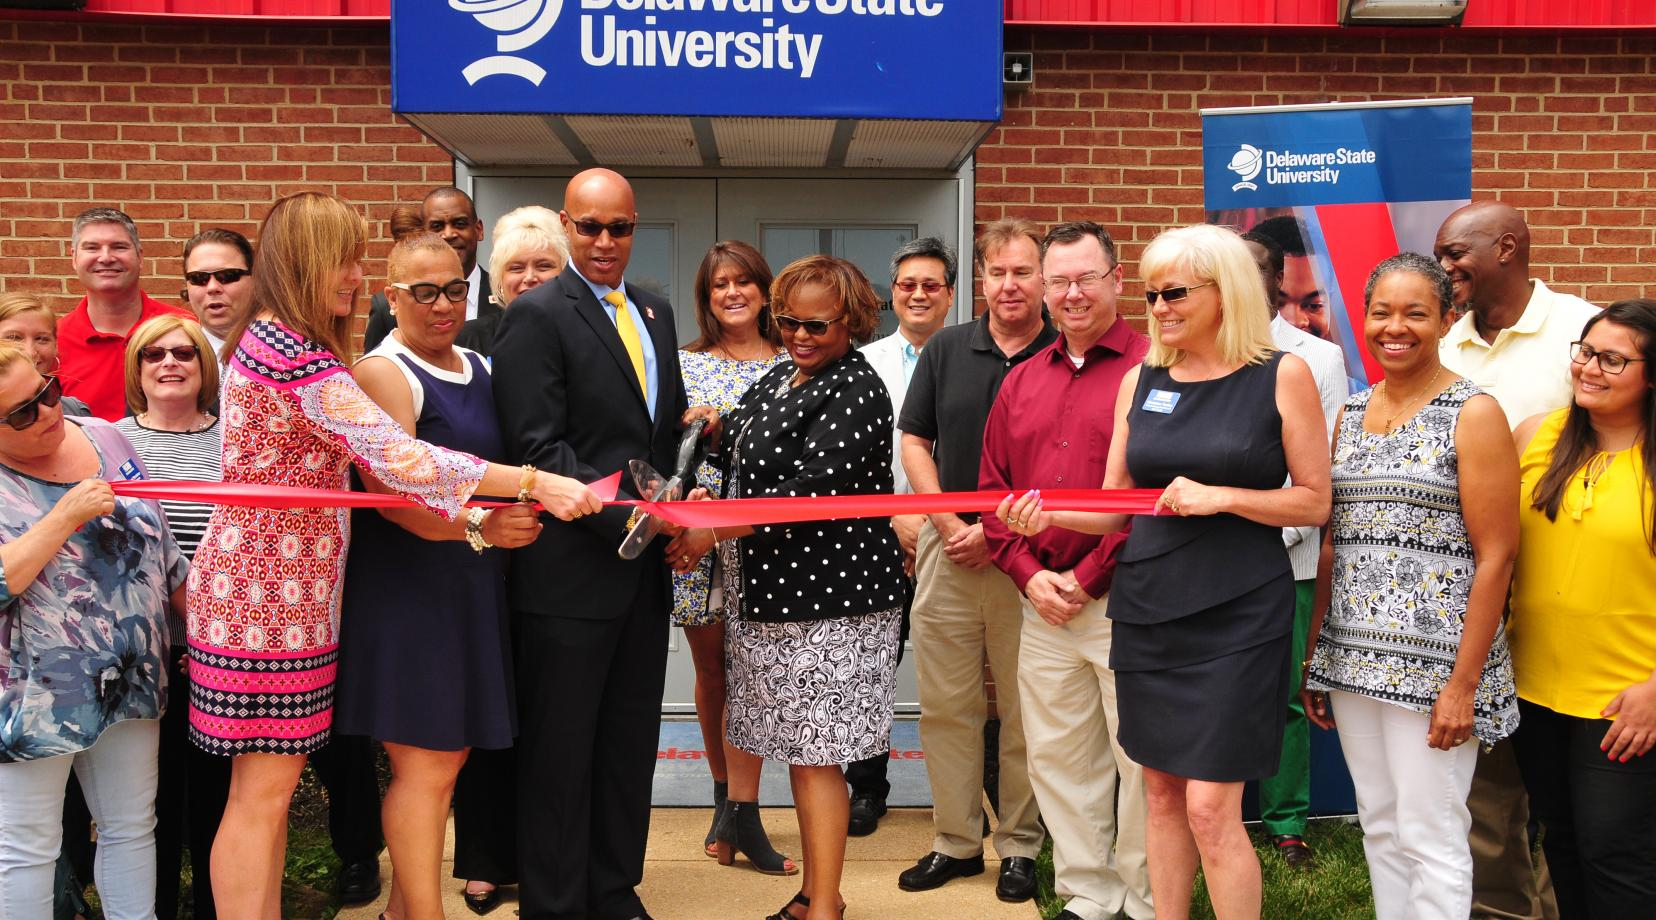 "<p>DSU Board of Trustees member Roy Roper and DSU Chief Financial Officer Teresa Hardee join officials of the New Castle County Chamber of Commerce for a ribbon cutting ceremony at the <a href=""mailto:DSU@Wilmington"">DSU@Wilmington</a> location in recognition of its educational contribution to Northern Delaware.</p>"